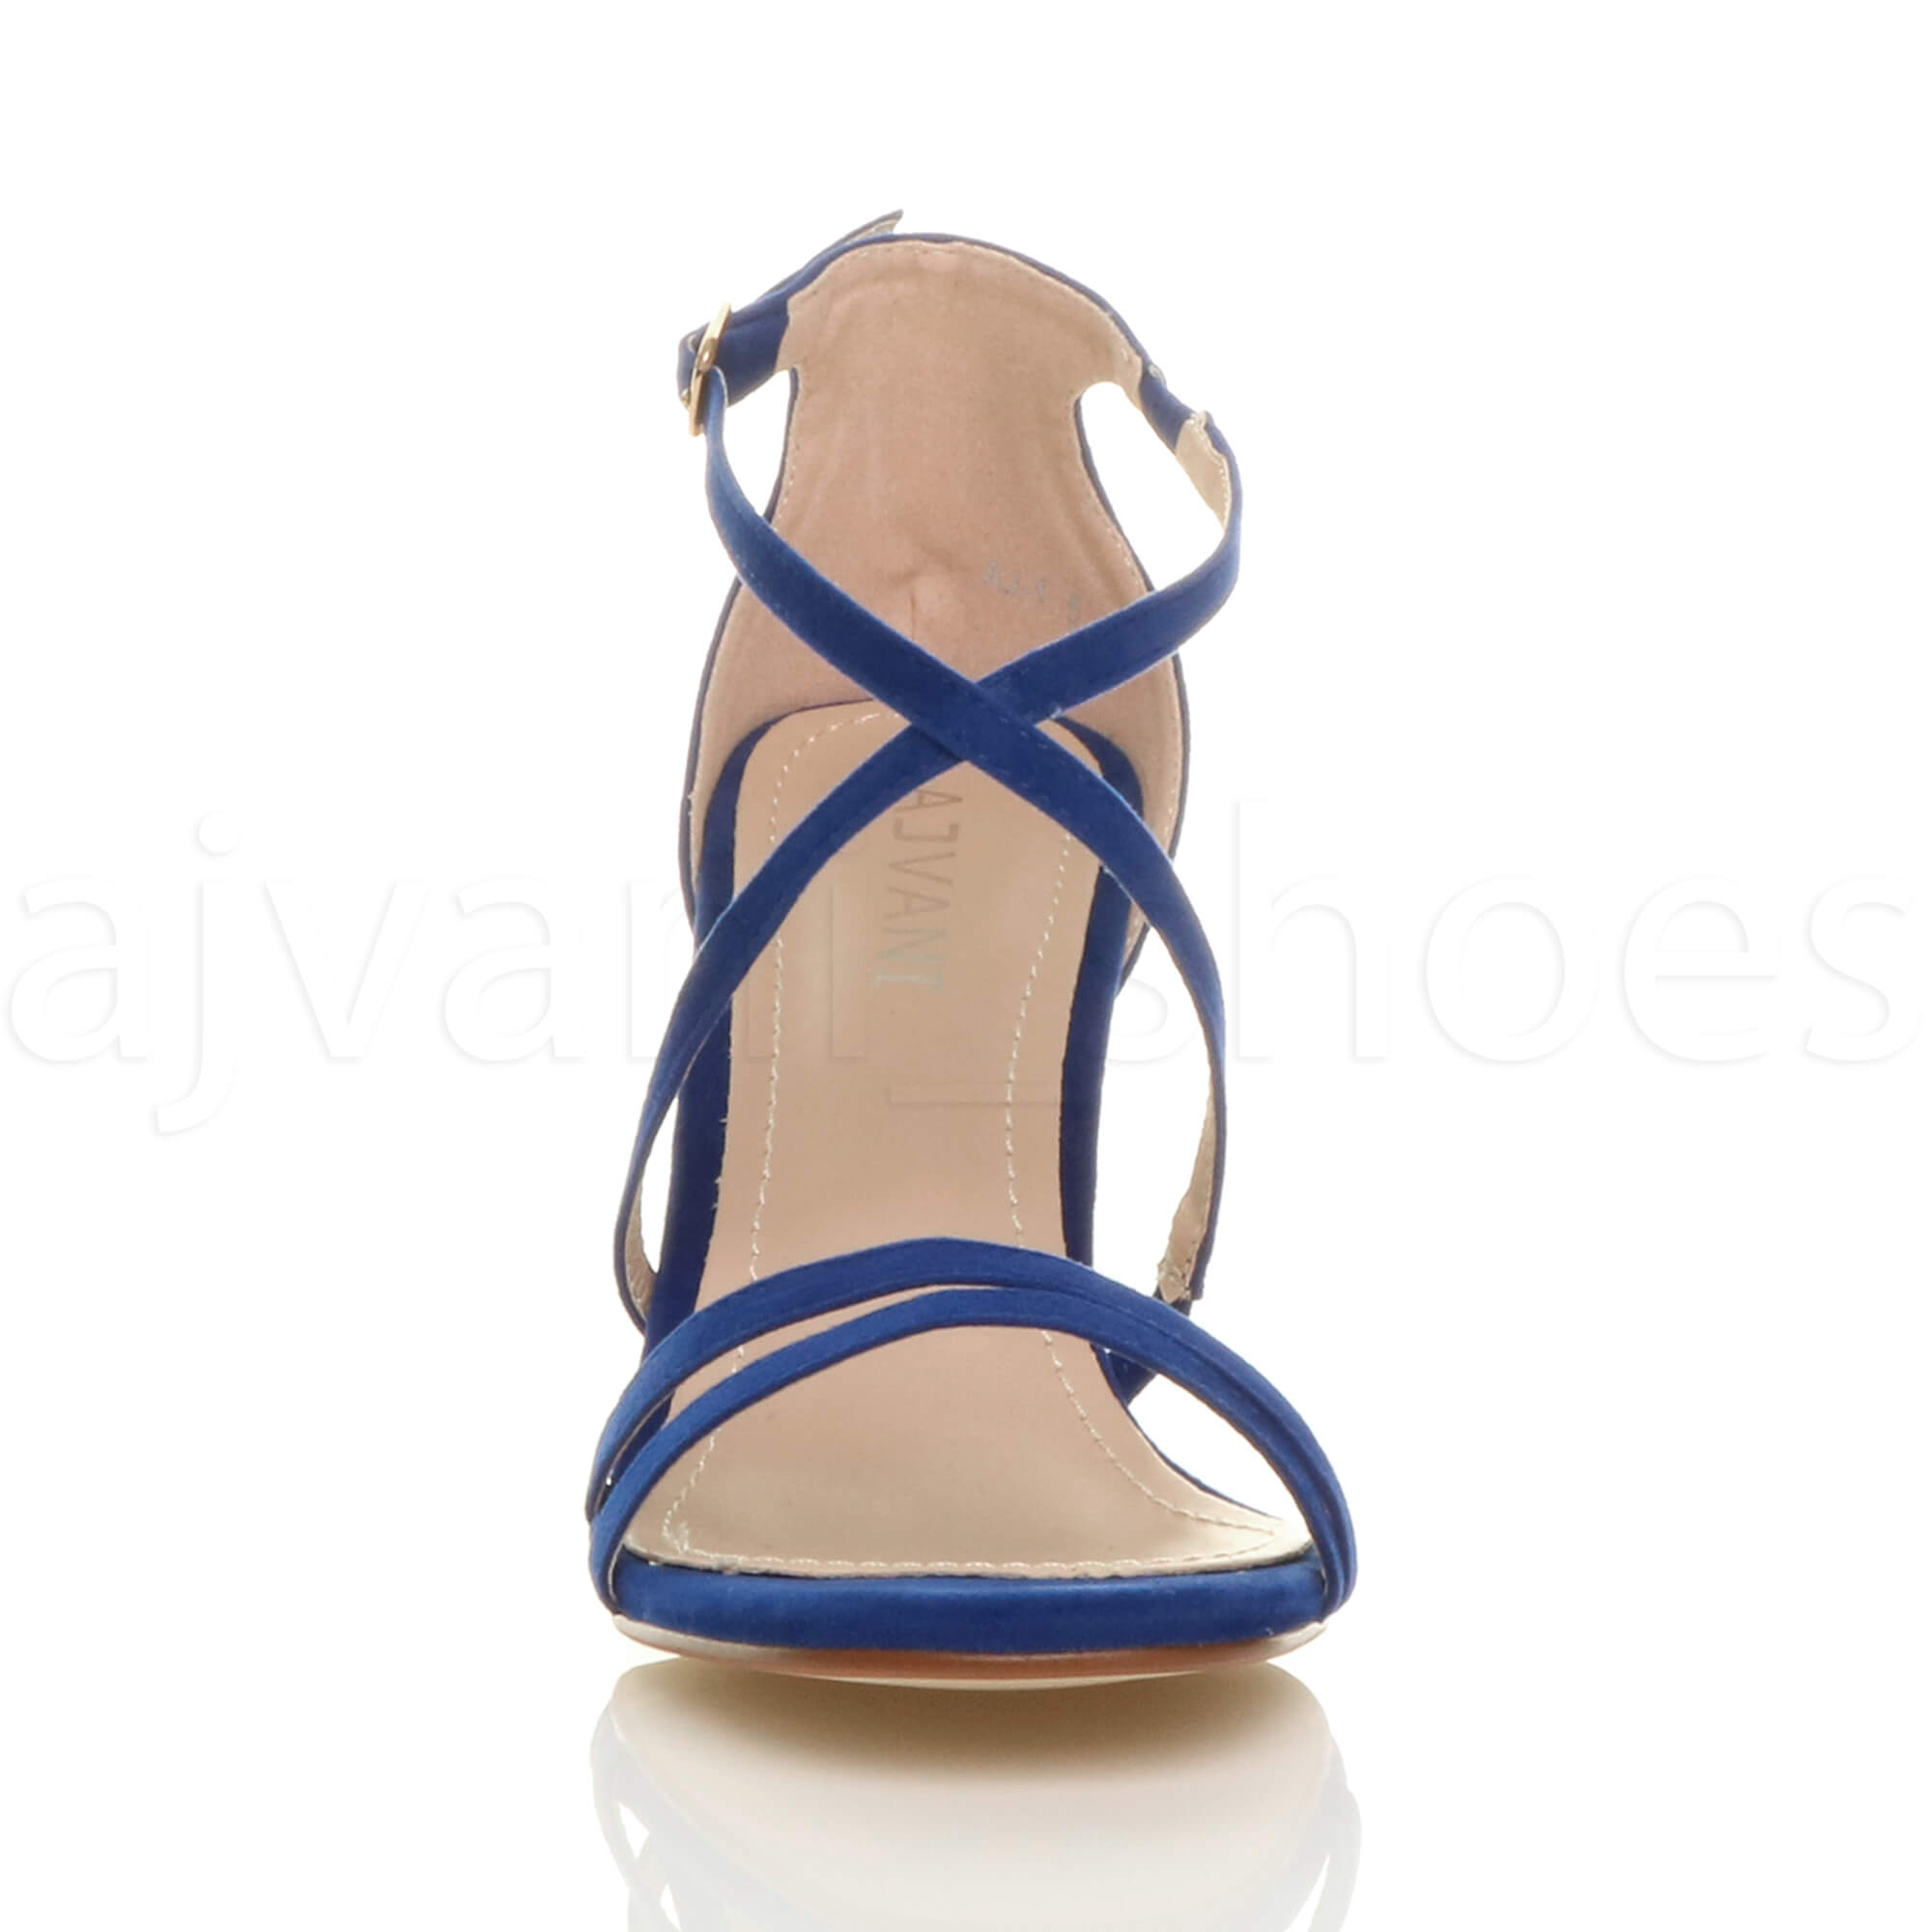 WOMENS-LADIES-MID-HIGH-HEEL-STRAPPY-CROSSOVER-WEDDING-PROM-SANDALS-SHOES-SIZE thumbnail 34